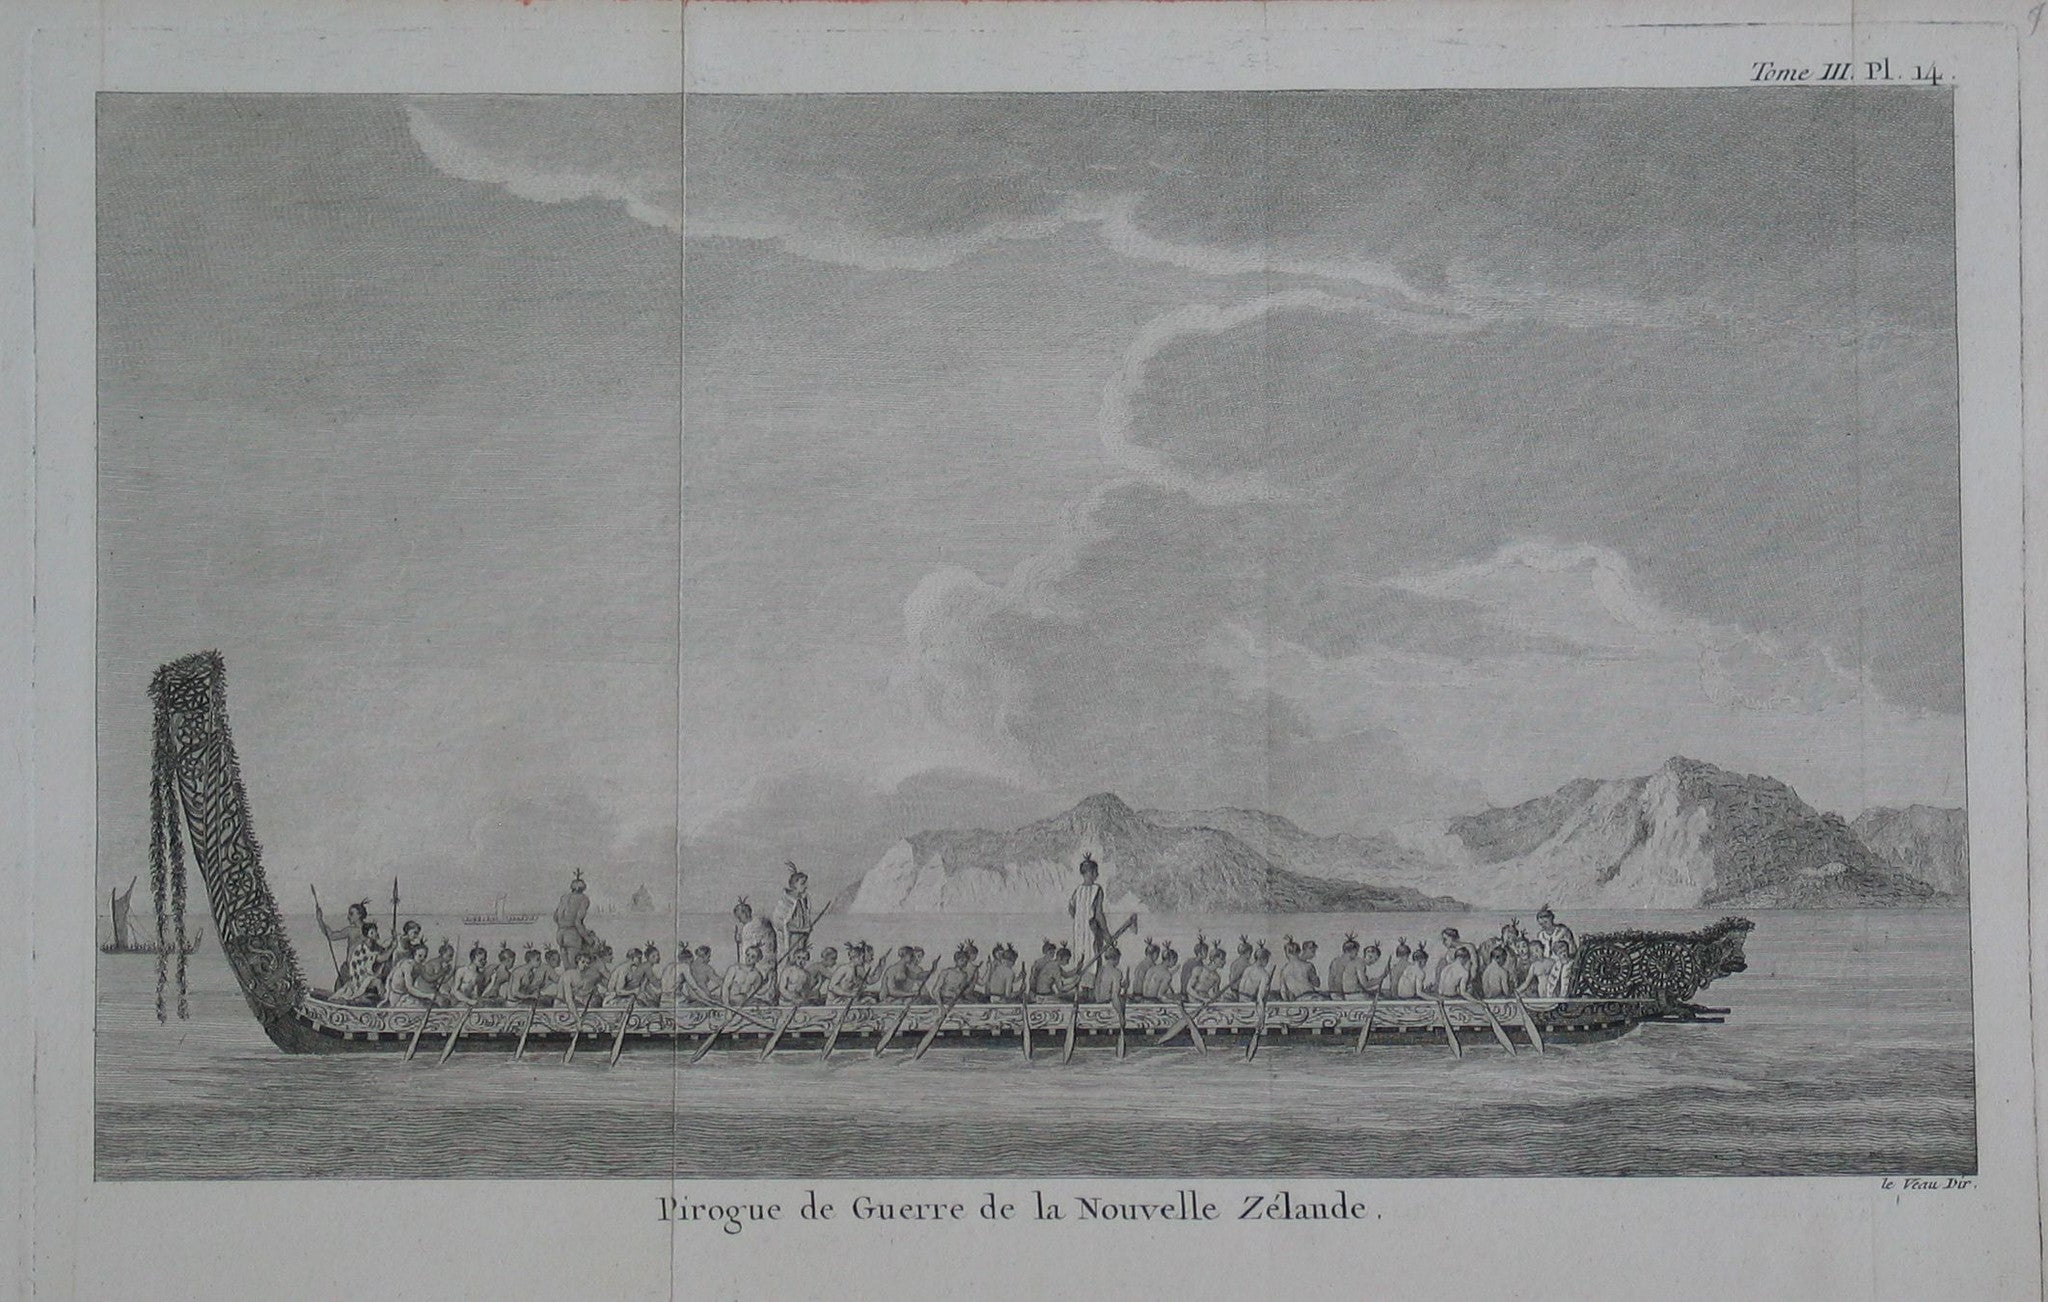 Pirogue de Guerre de la Nouvelle Zélande (War canoe of New Zealand)